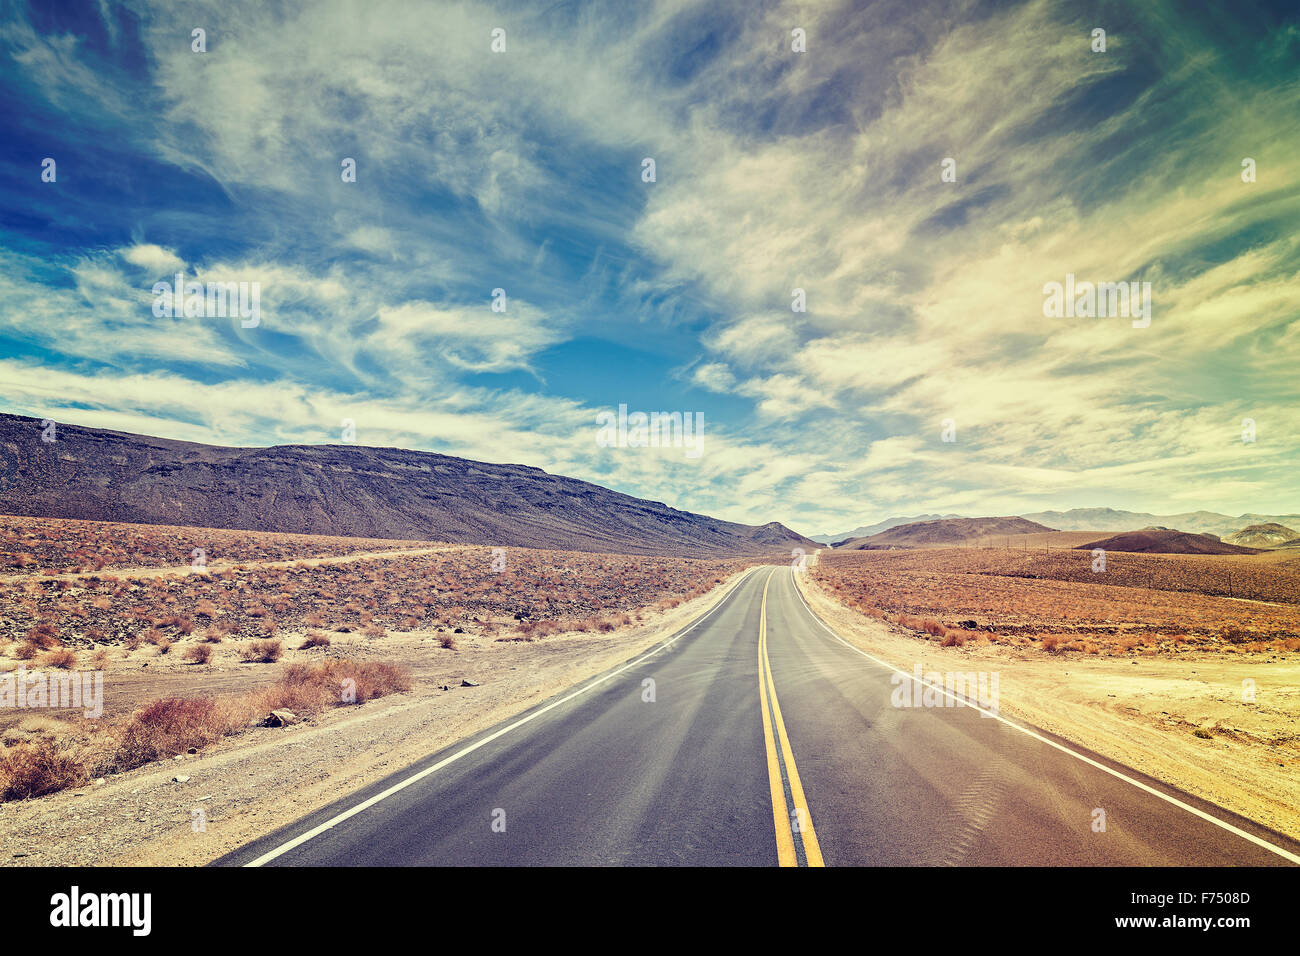 Vintage stylized endless country highway in Death Valley, California, USA. - Stock Image